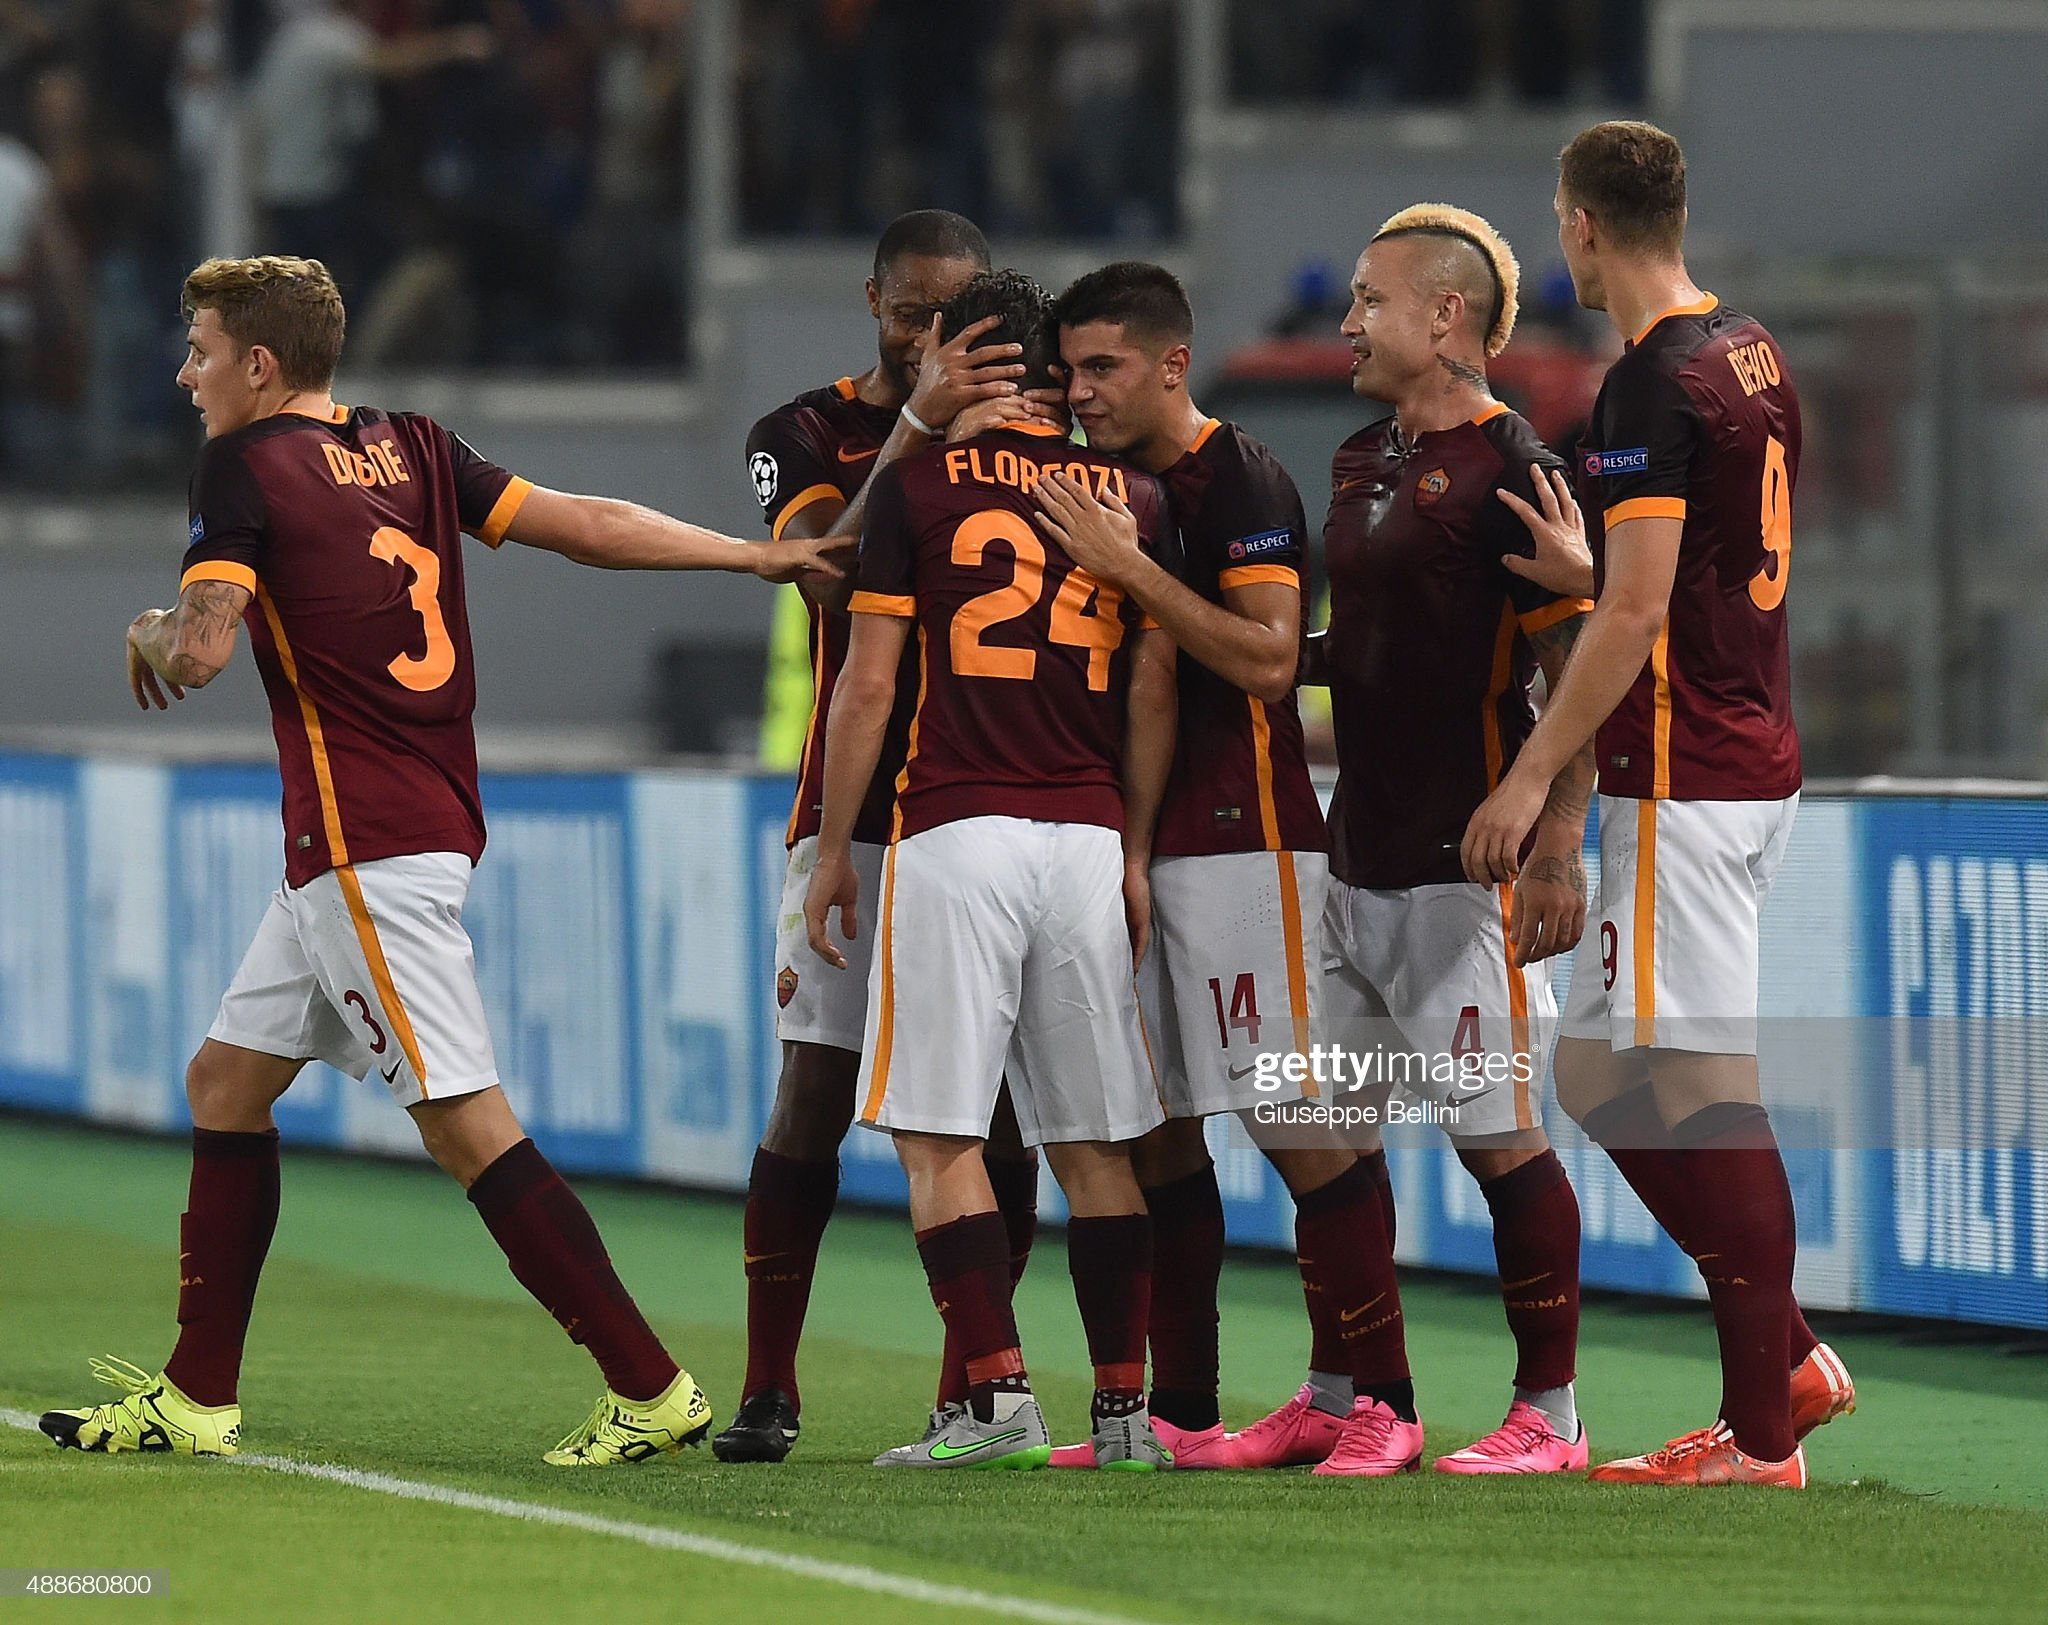 ¿Cuánto mide Alessandro Florenzi? - Real height Alessandro-florenzi-of-as-roma-celebrates-after-scoring-the-goal-11-picture-id488680800?s=2048x2048